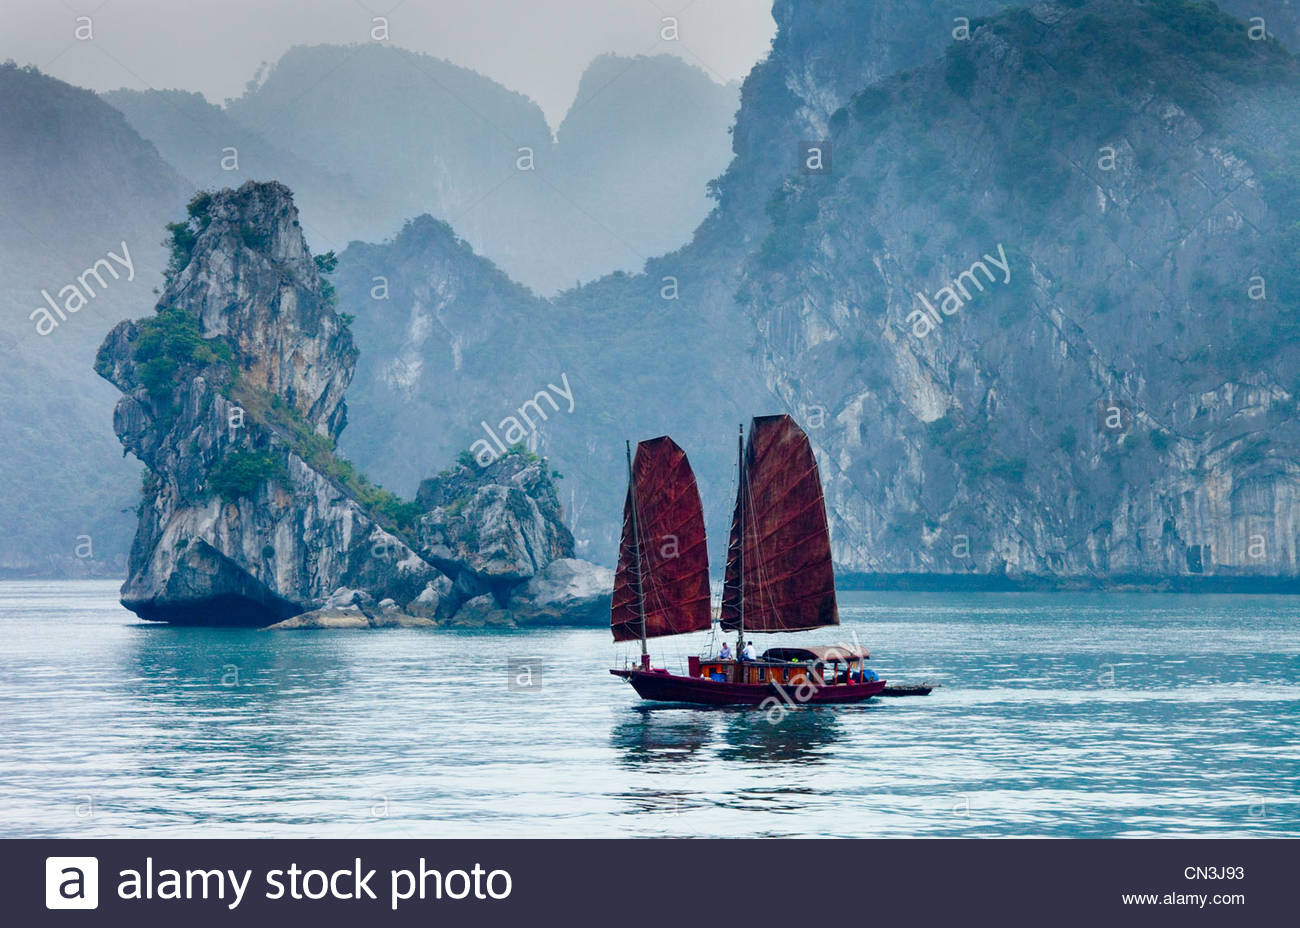 Boat, Halong Bay, Vietnam - Stock Image